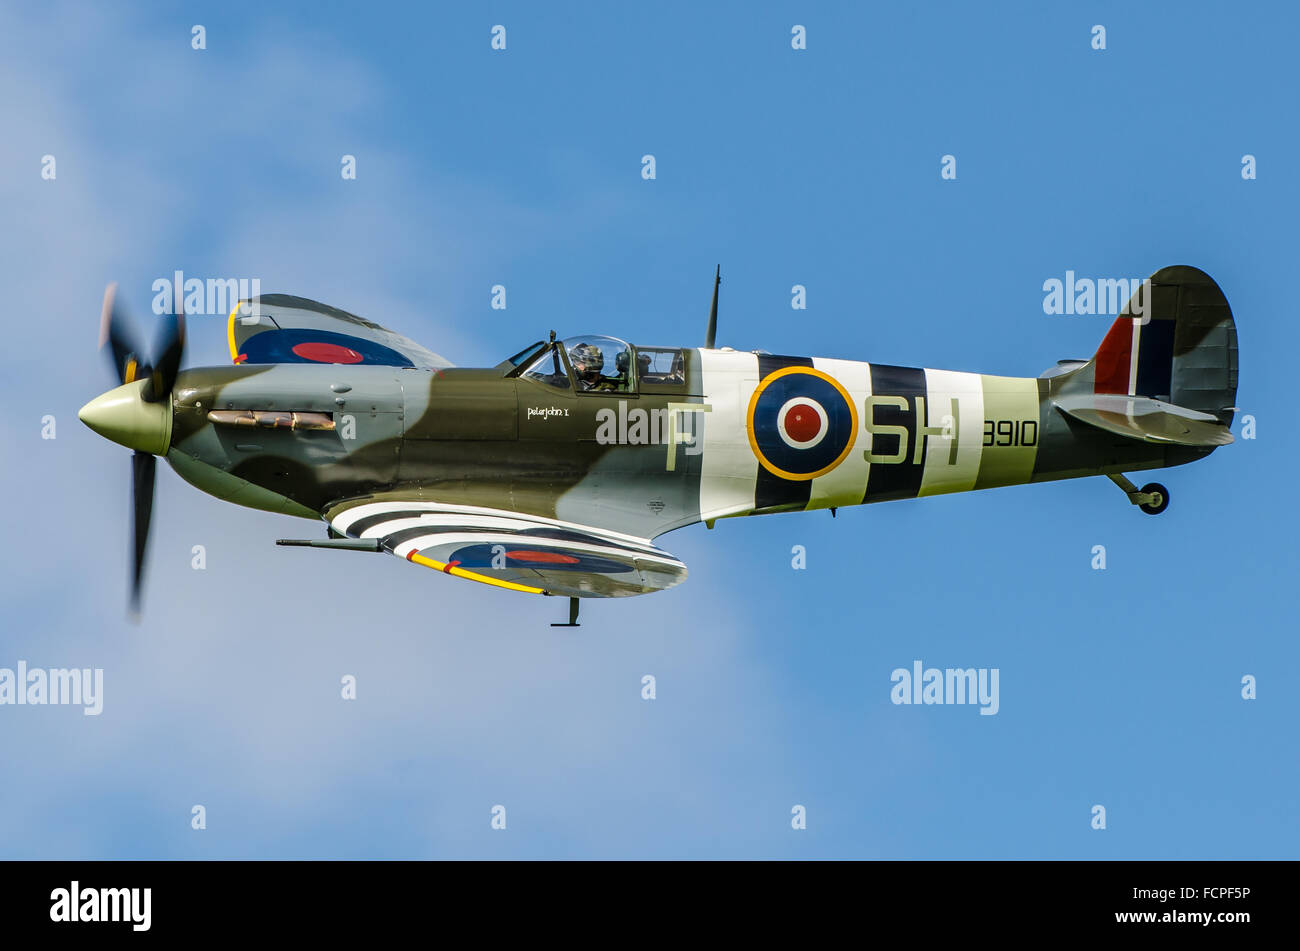 spitfire-vb-ab910-was-donated-to-the-bat